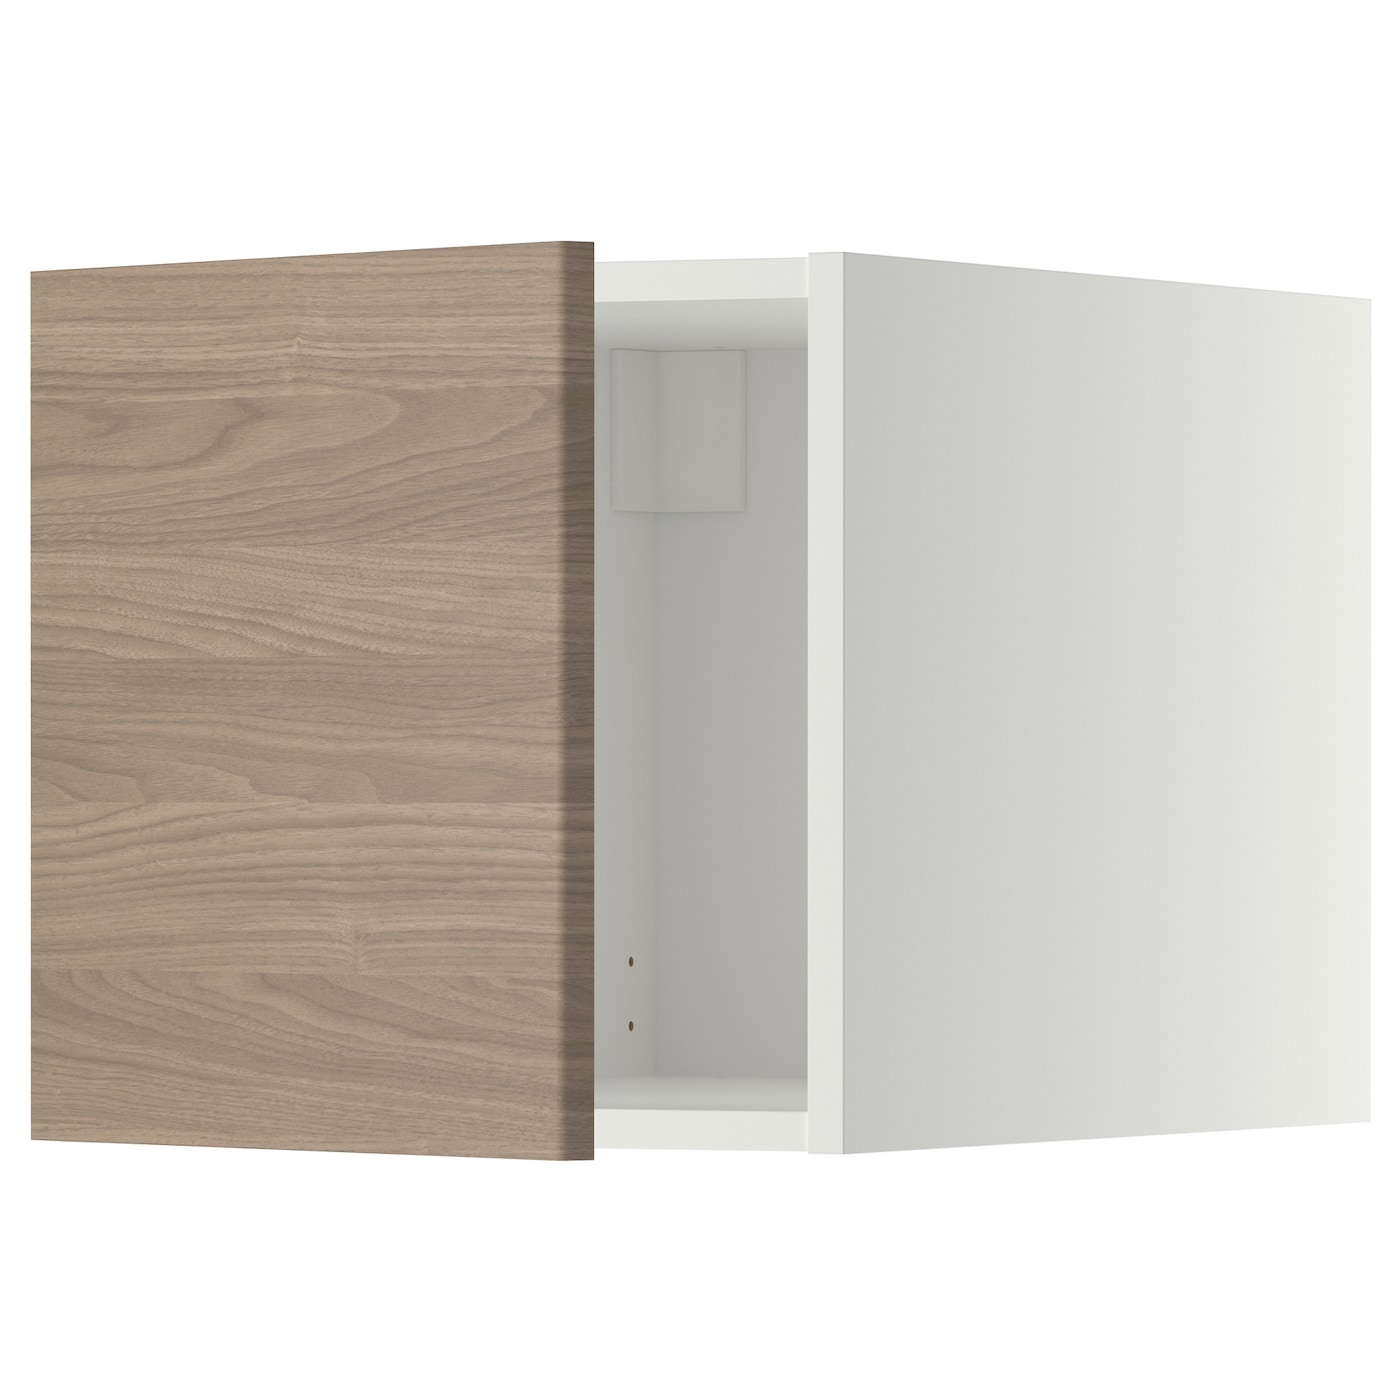 IKEA METOD Top Cabinet You Can Choose To Mount The Door On The Right  #776654 2000 2000 Pensili Da Cucina Per Disabili